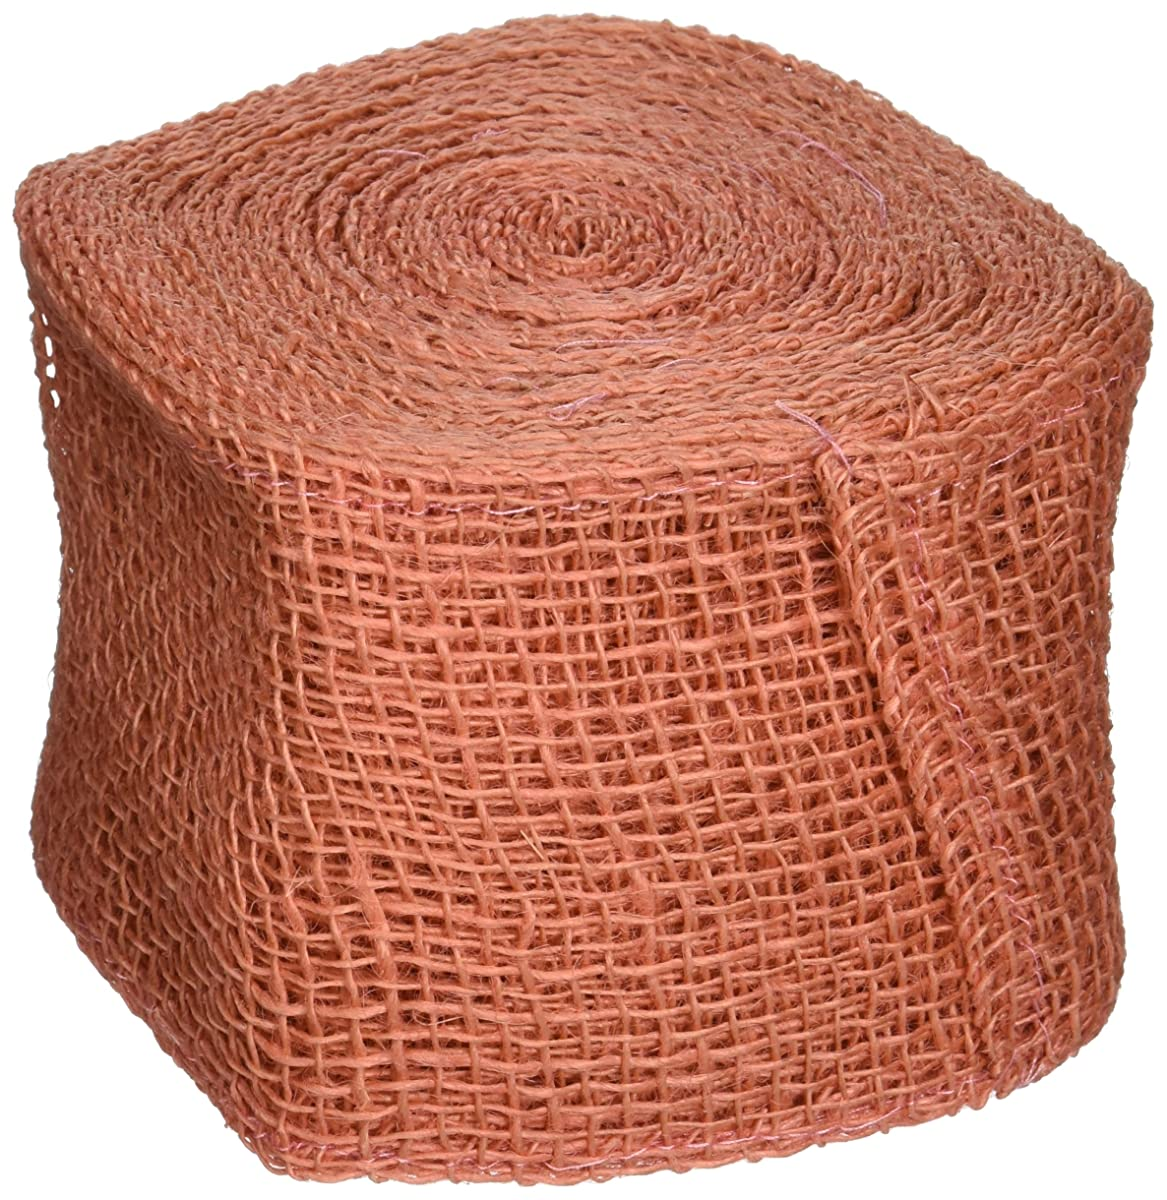 Kel-Toy Jute Burlap Ribbon Roll, 4-Inch by 10-Yard, Coral